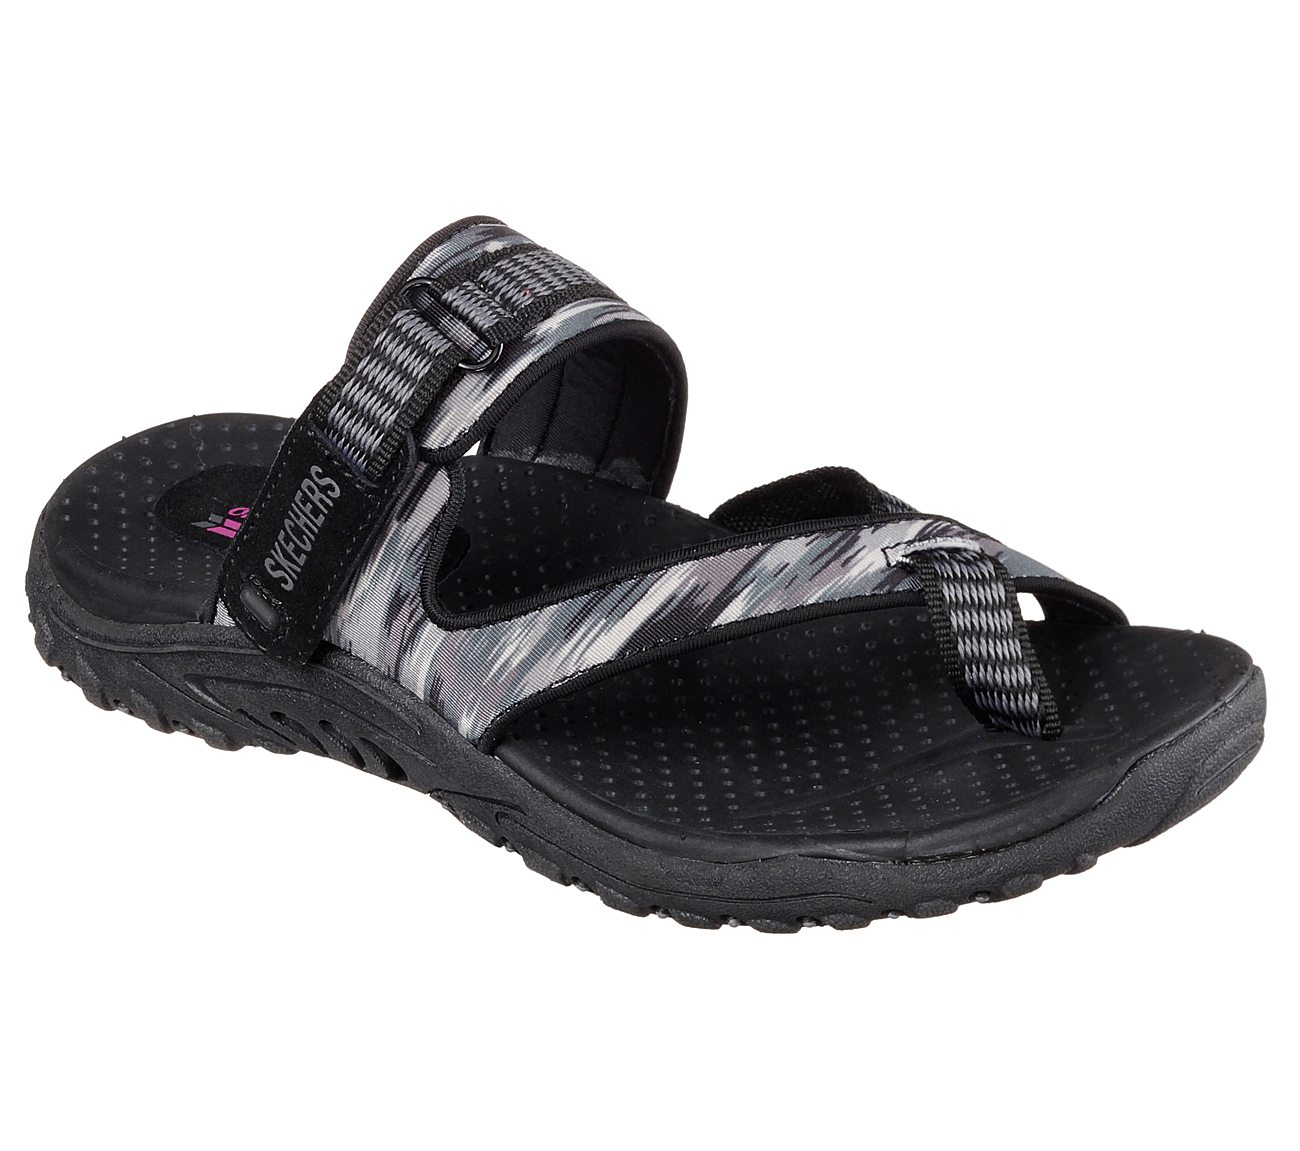 Skechers Reggae Brush Strokes Sandal (Women's)